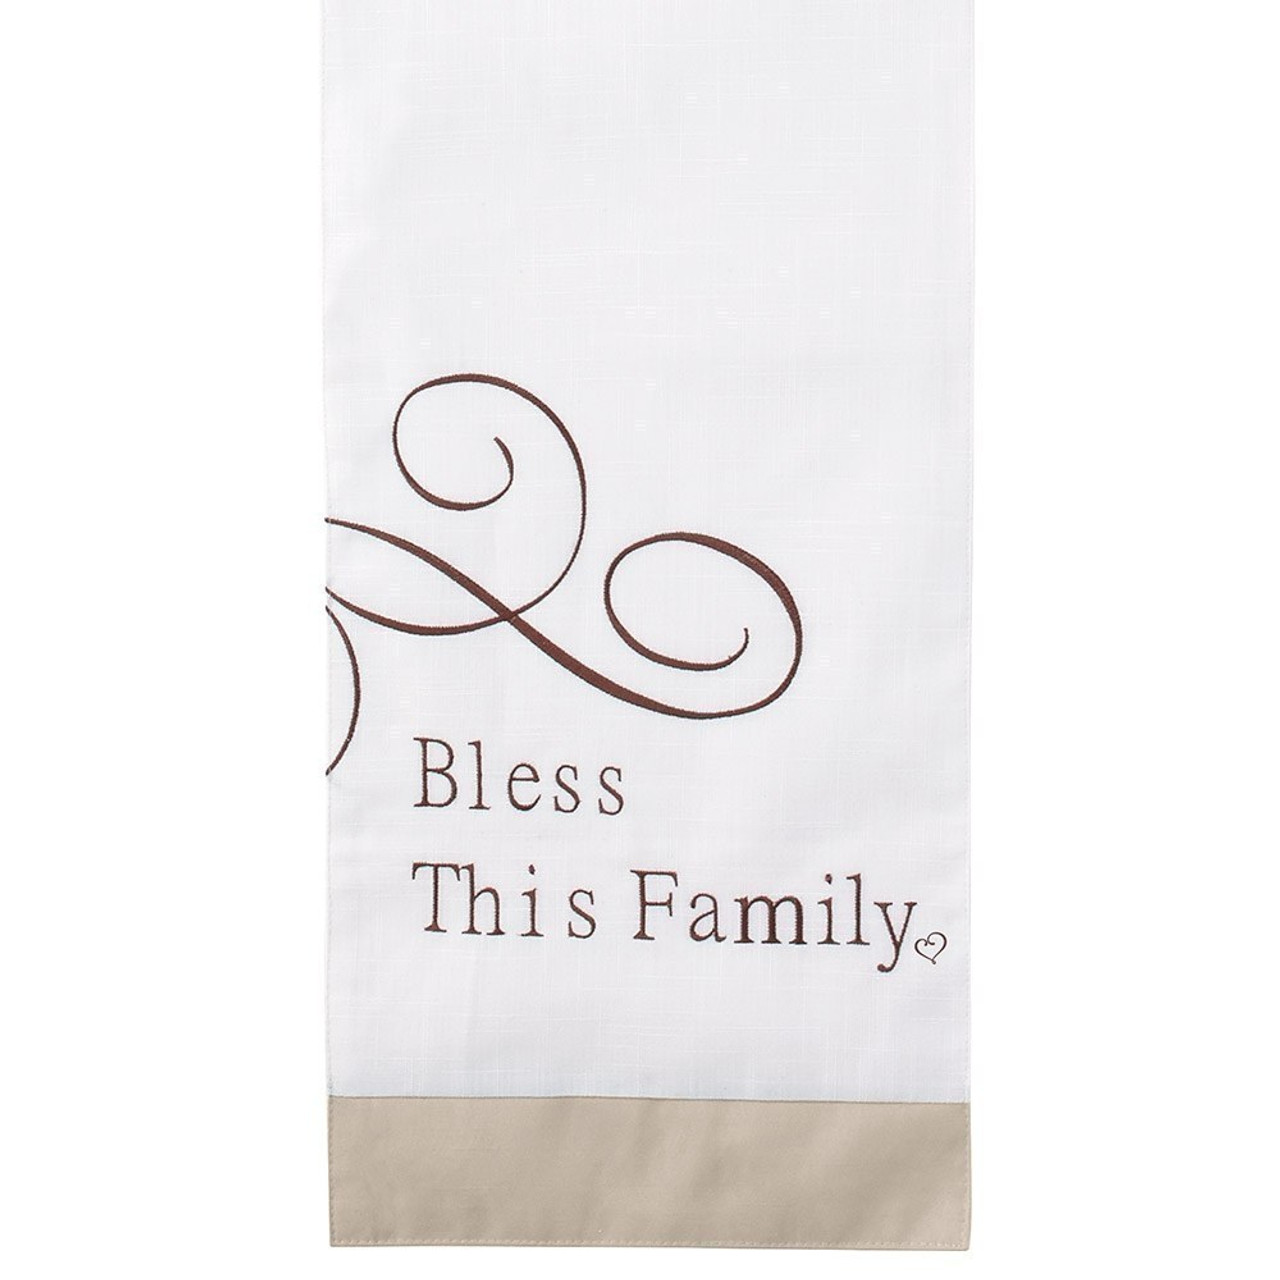 Bountiful Blessings Bless This Family Table Runner 72 X 13 Inches Polyester 182420